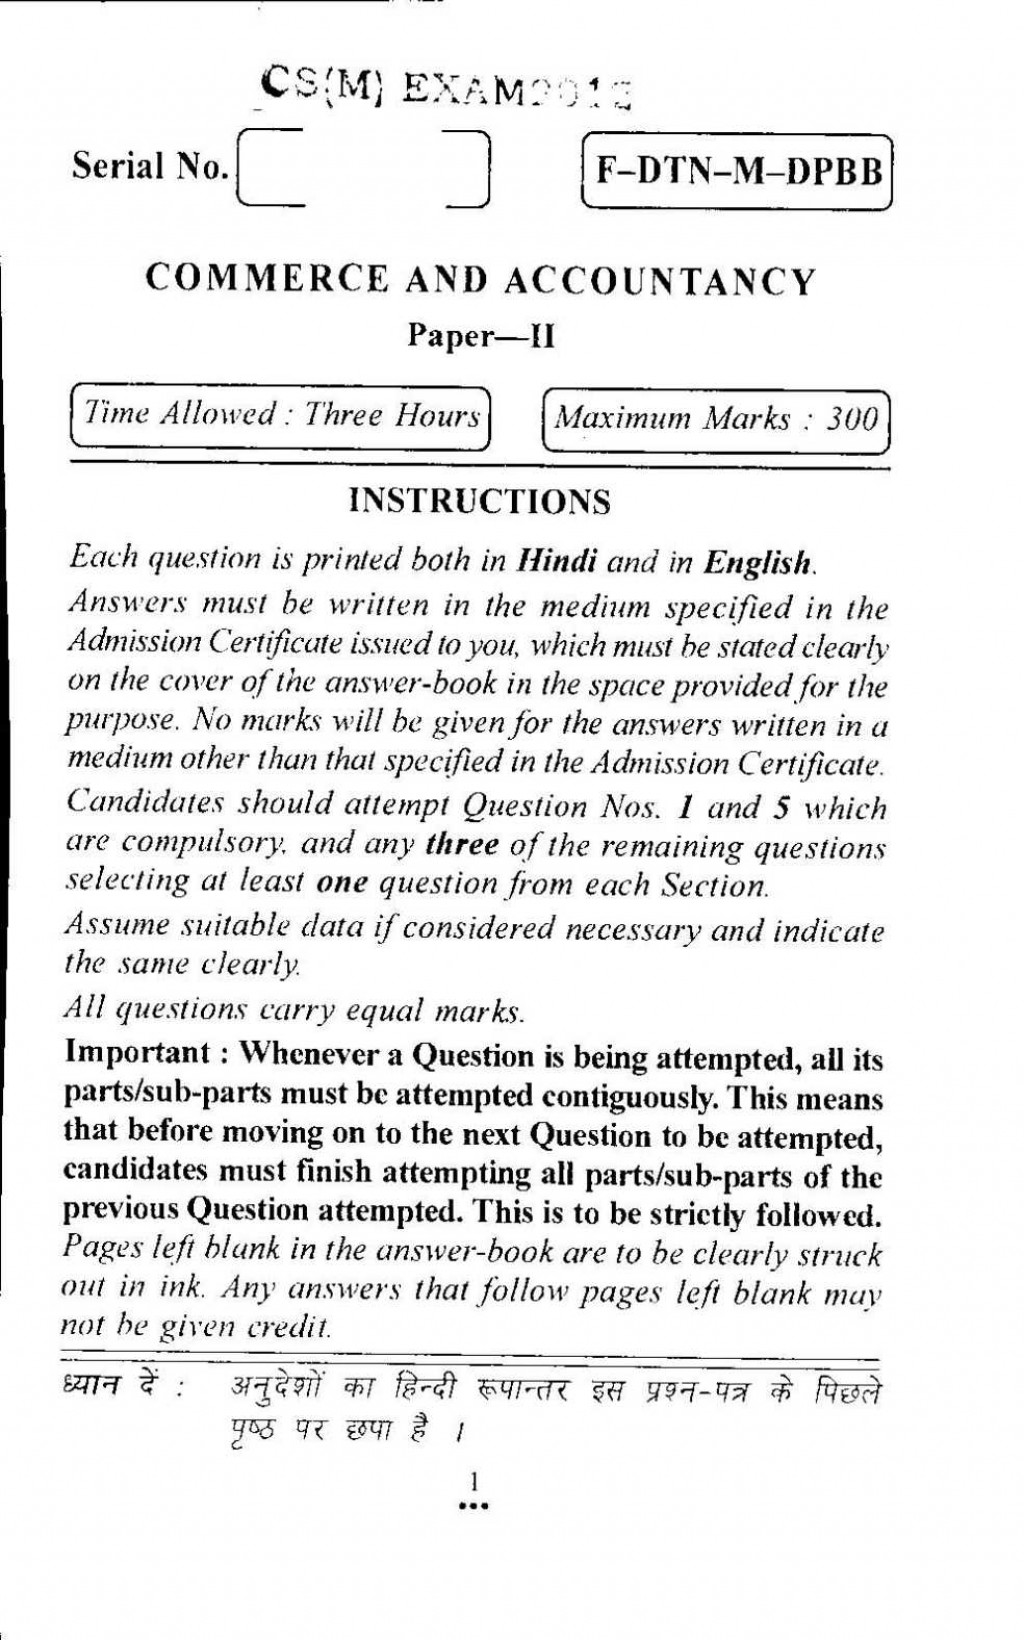 013 Civil Services Examination Commerce And Accountancy Paper Ii Previous Years Que Essay On Racism Exceptional In Othello Sports Classism Large